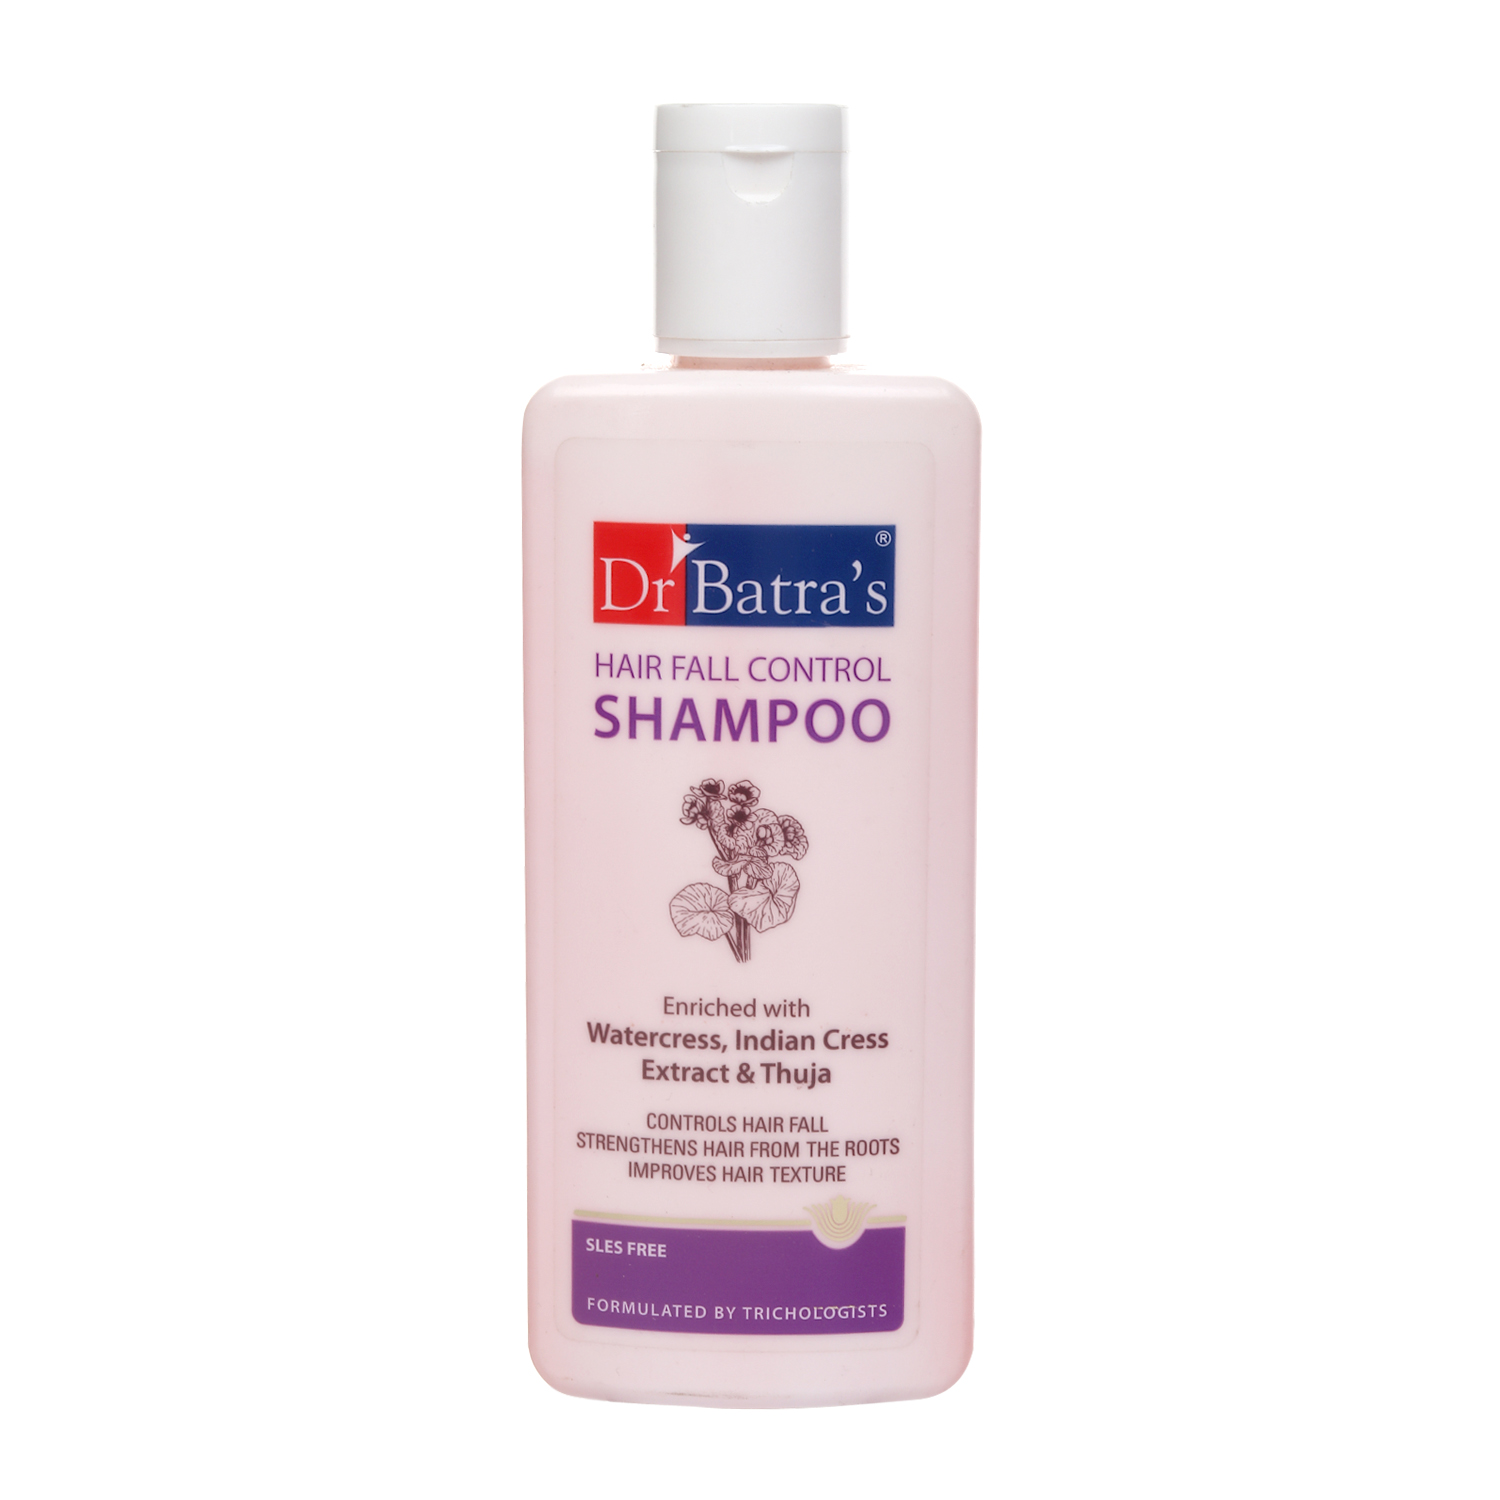 Dr Batra's | Dr Batra's Hair Fall Control Shampoo Enriched With Watercress, Indian Cress extract and Thuja - 200 ml